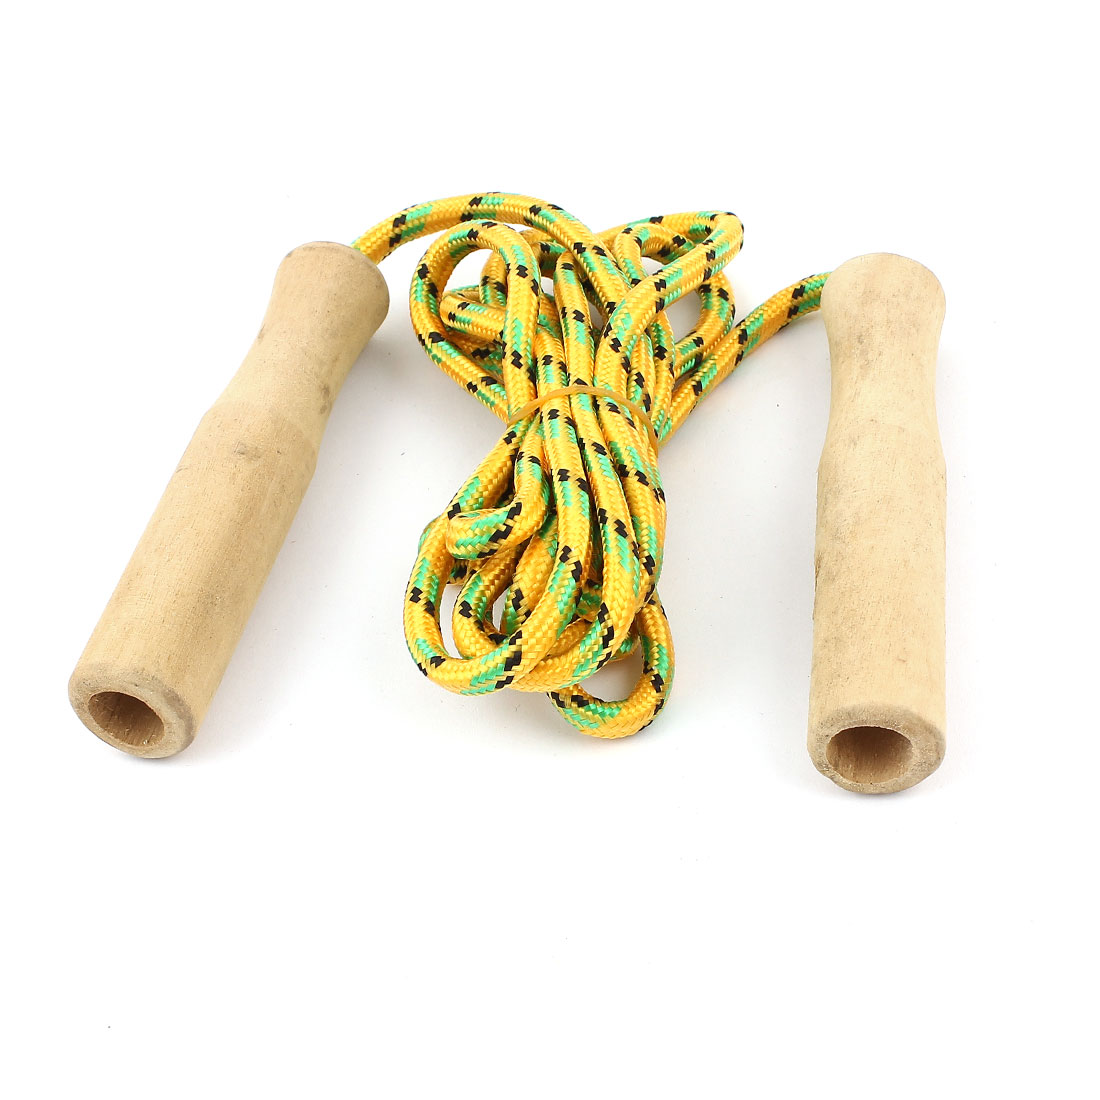 Wooden Handle Sports Exercise Jumping Skipping Rope Yellow 2 Meter Long